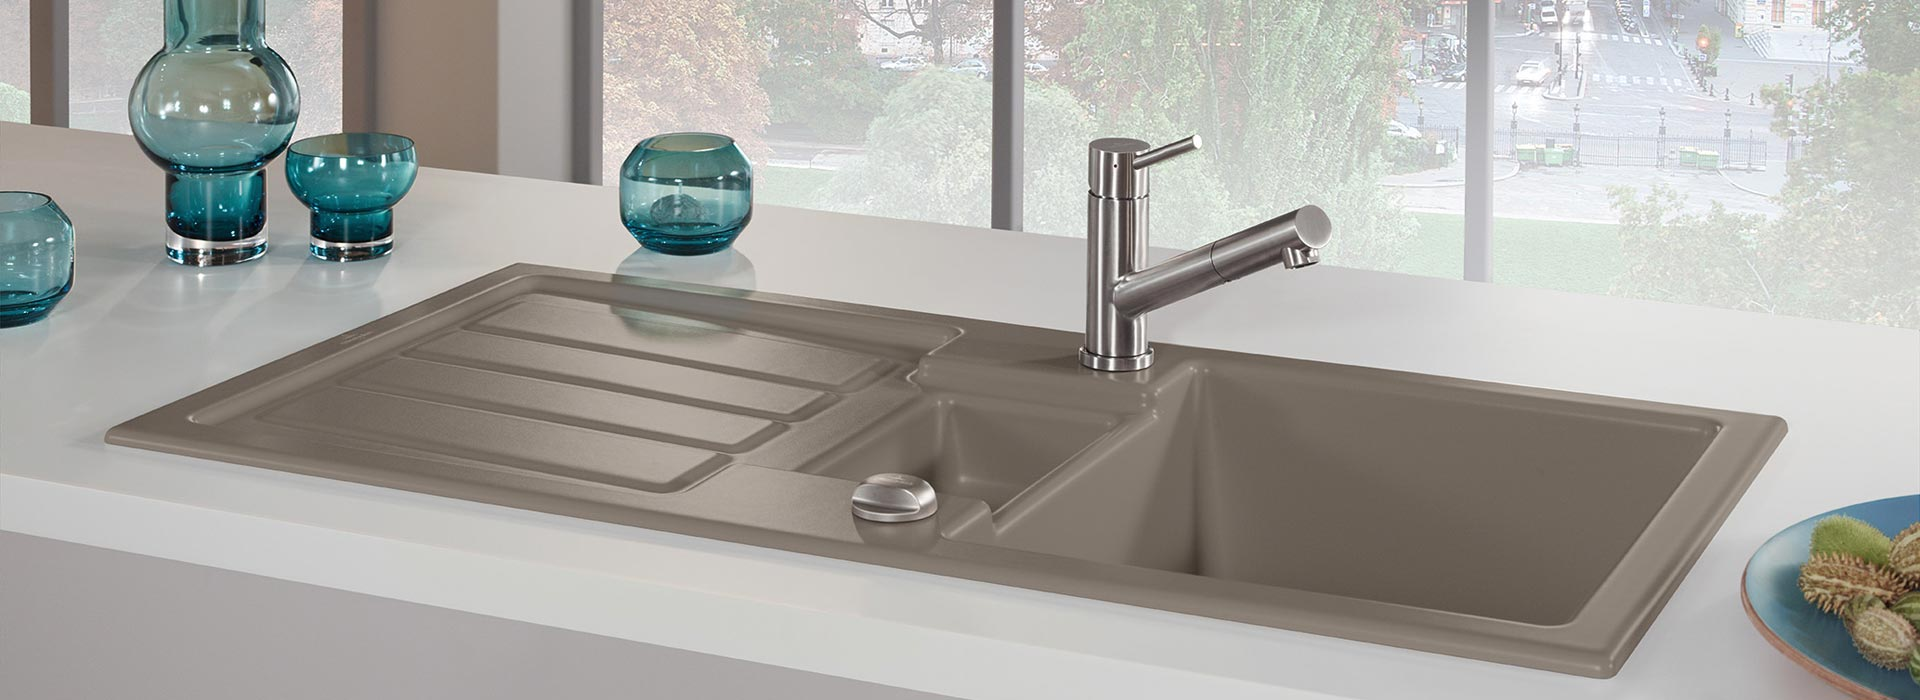 Built In Sink In Outstanding Quality From Villeroy Amp Boch